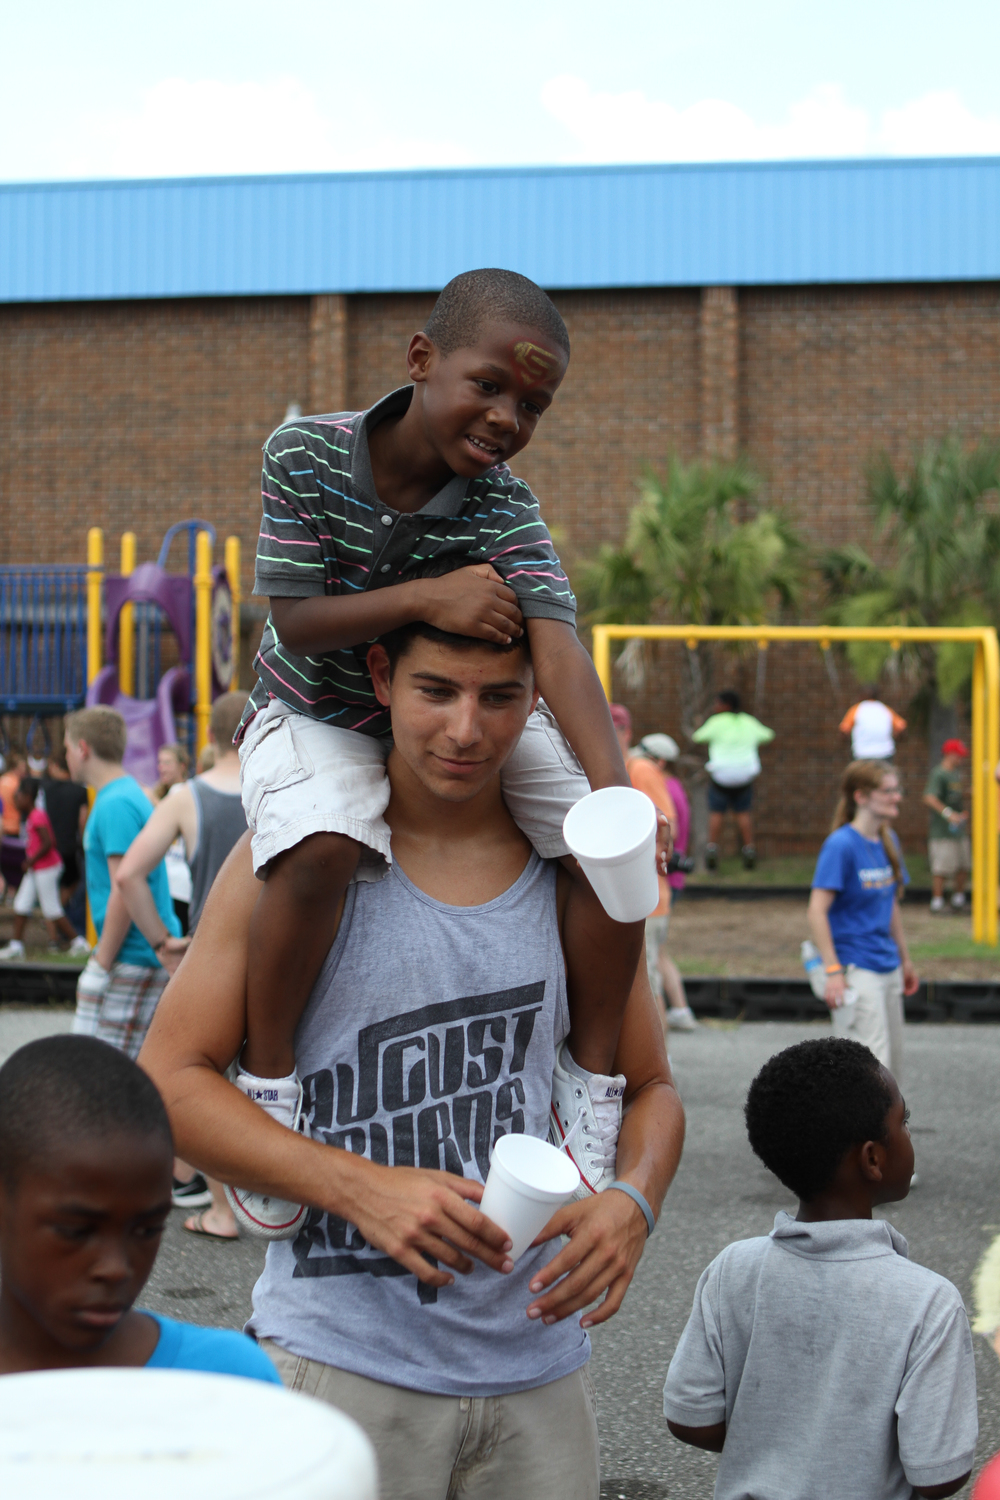 A student plays with a kid attending our Boys & Girls Club fun day.